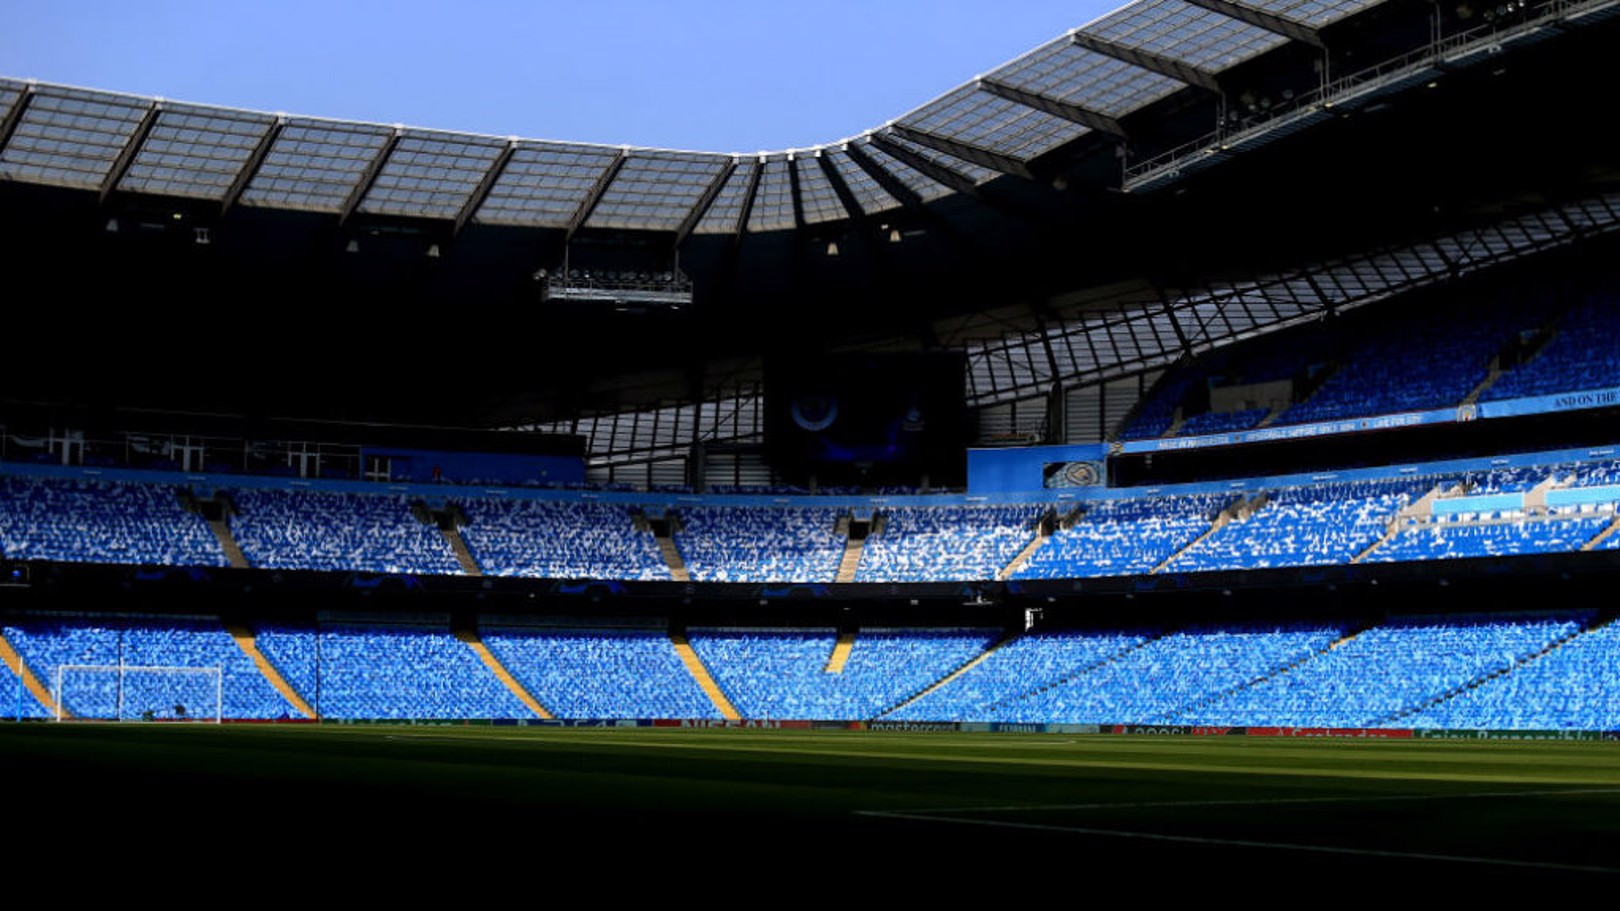 CALM BEFORE THE STORM: The Etihad looked stunning in the April sunshine